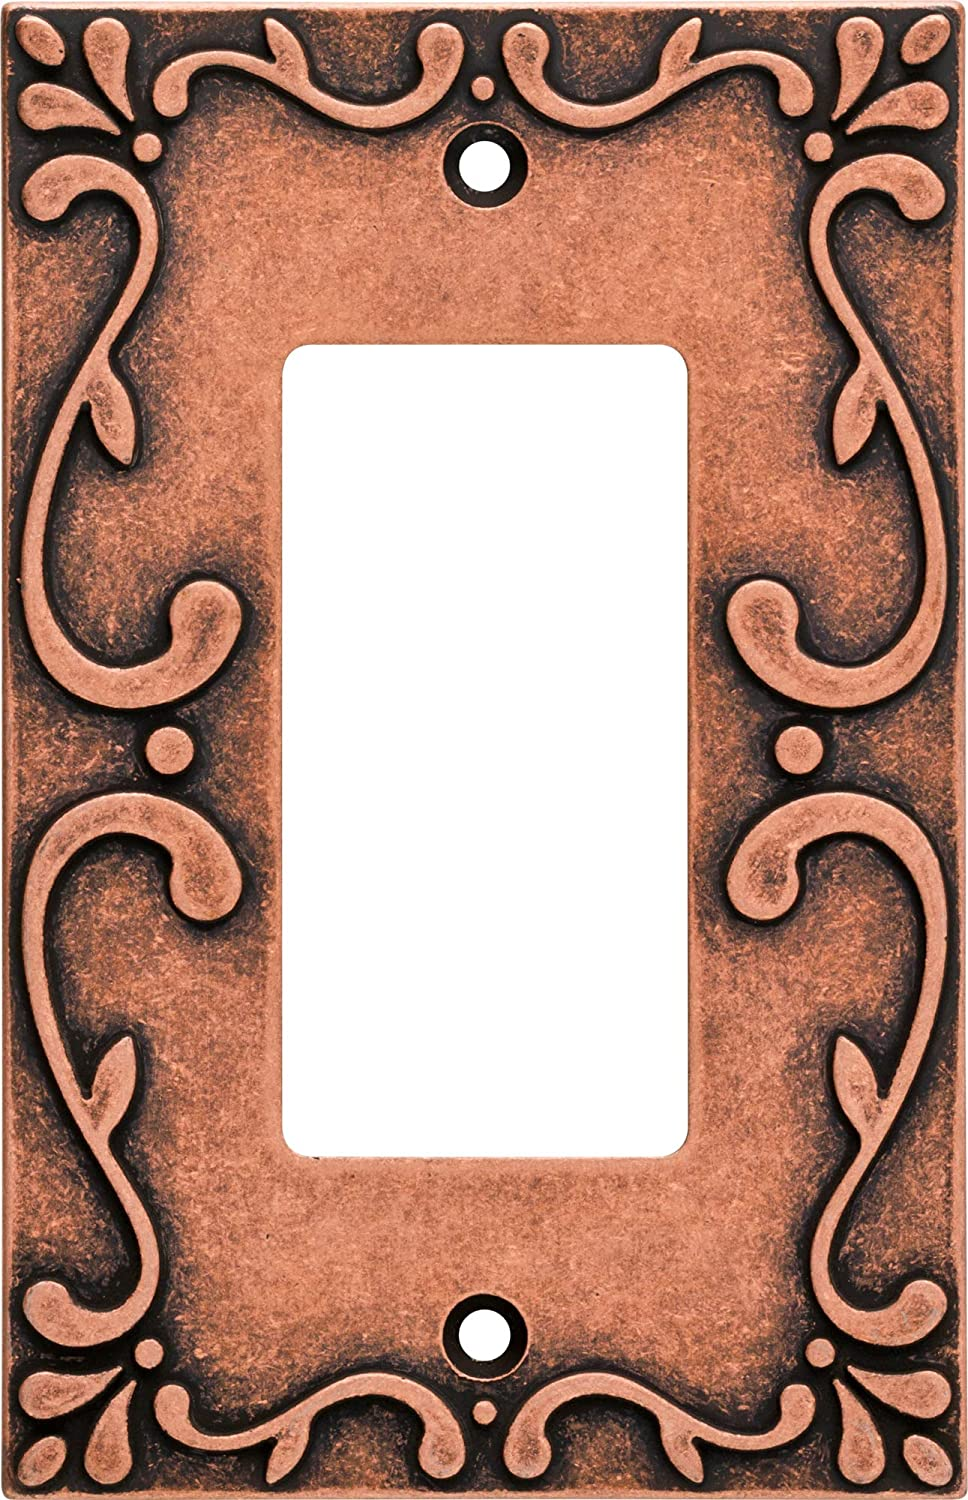 Franklin Brass W35072-CPS-C Classic Lace Single Decorator Wall Plate/Switch Plate/Cover, Sponged Copper